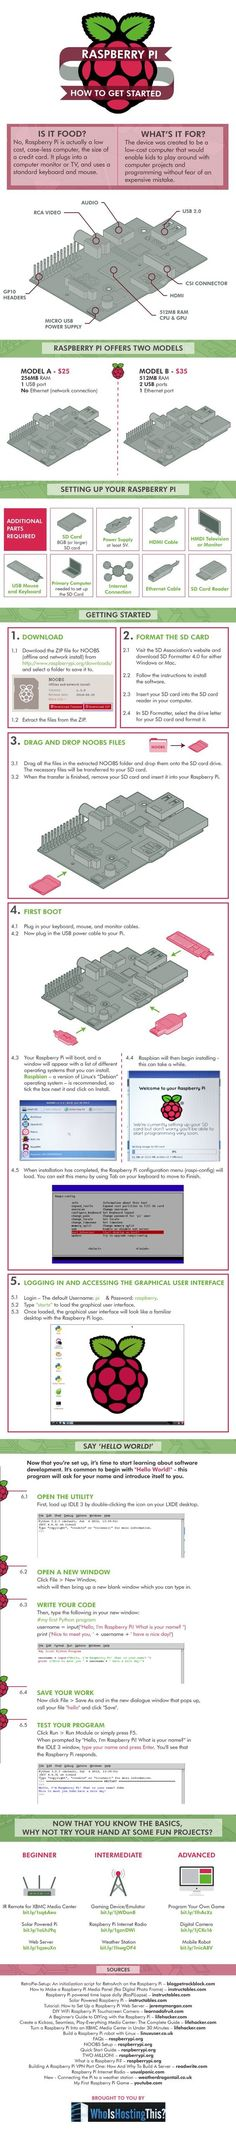 Raspberry Pi is a low cost, case-less computter. It plugs into a computer monitor or TV, and uses a standard keyboard and mouse. The device was created to be a low-cast computer that would enable kids to play around with computer projects and programming without fear of an expensive mistake. It also good for home...